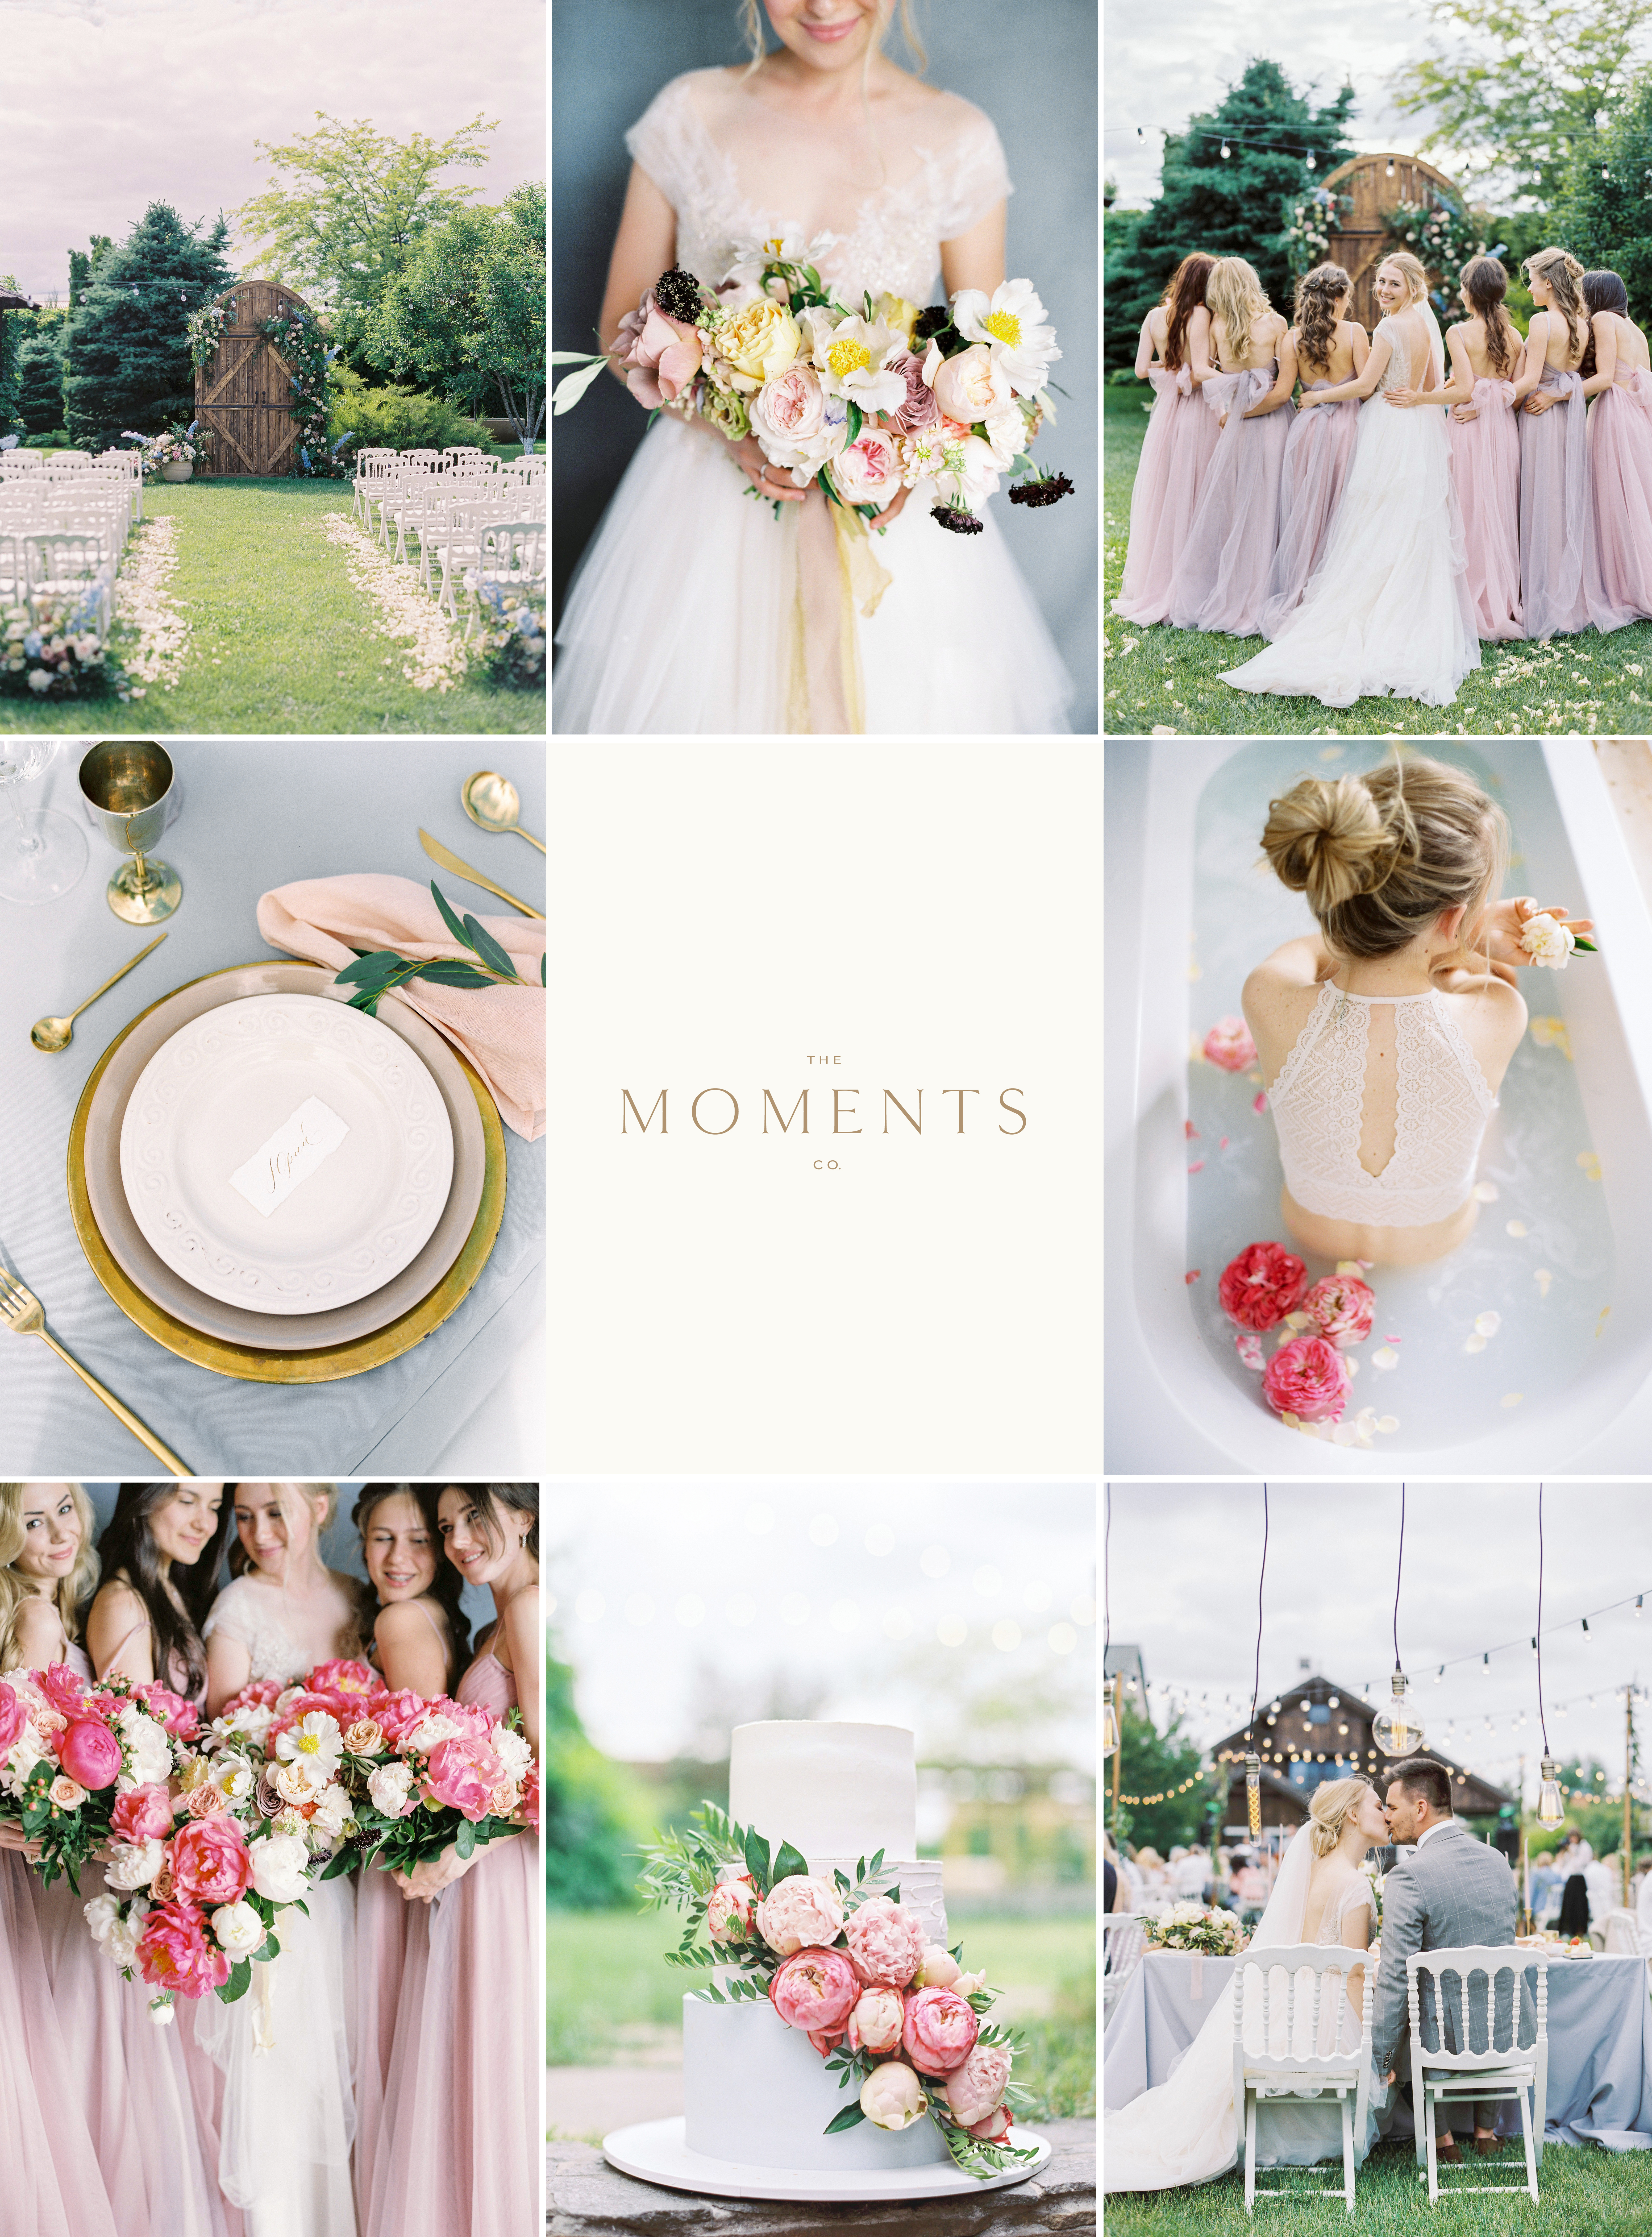 MOMENTS - WEDDING PLANNING